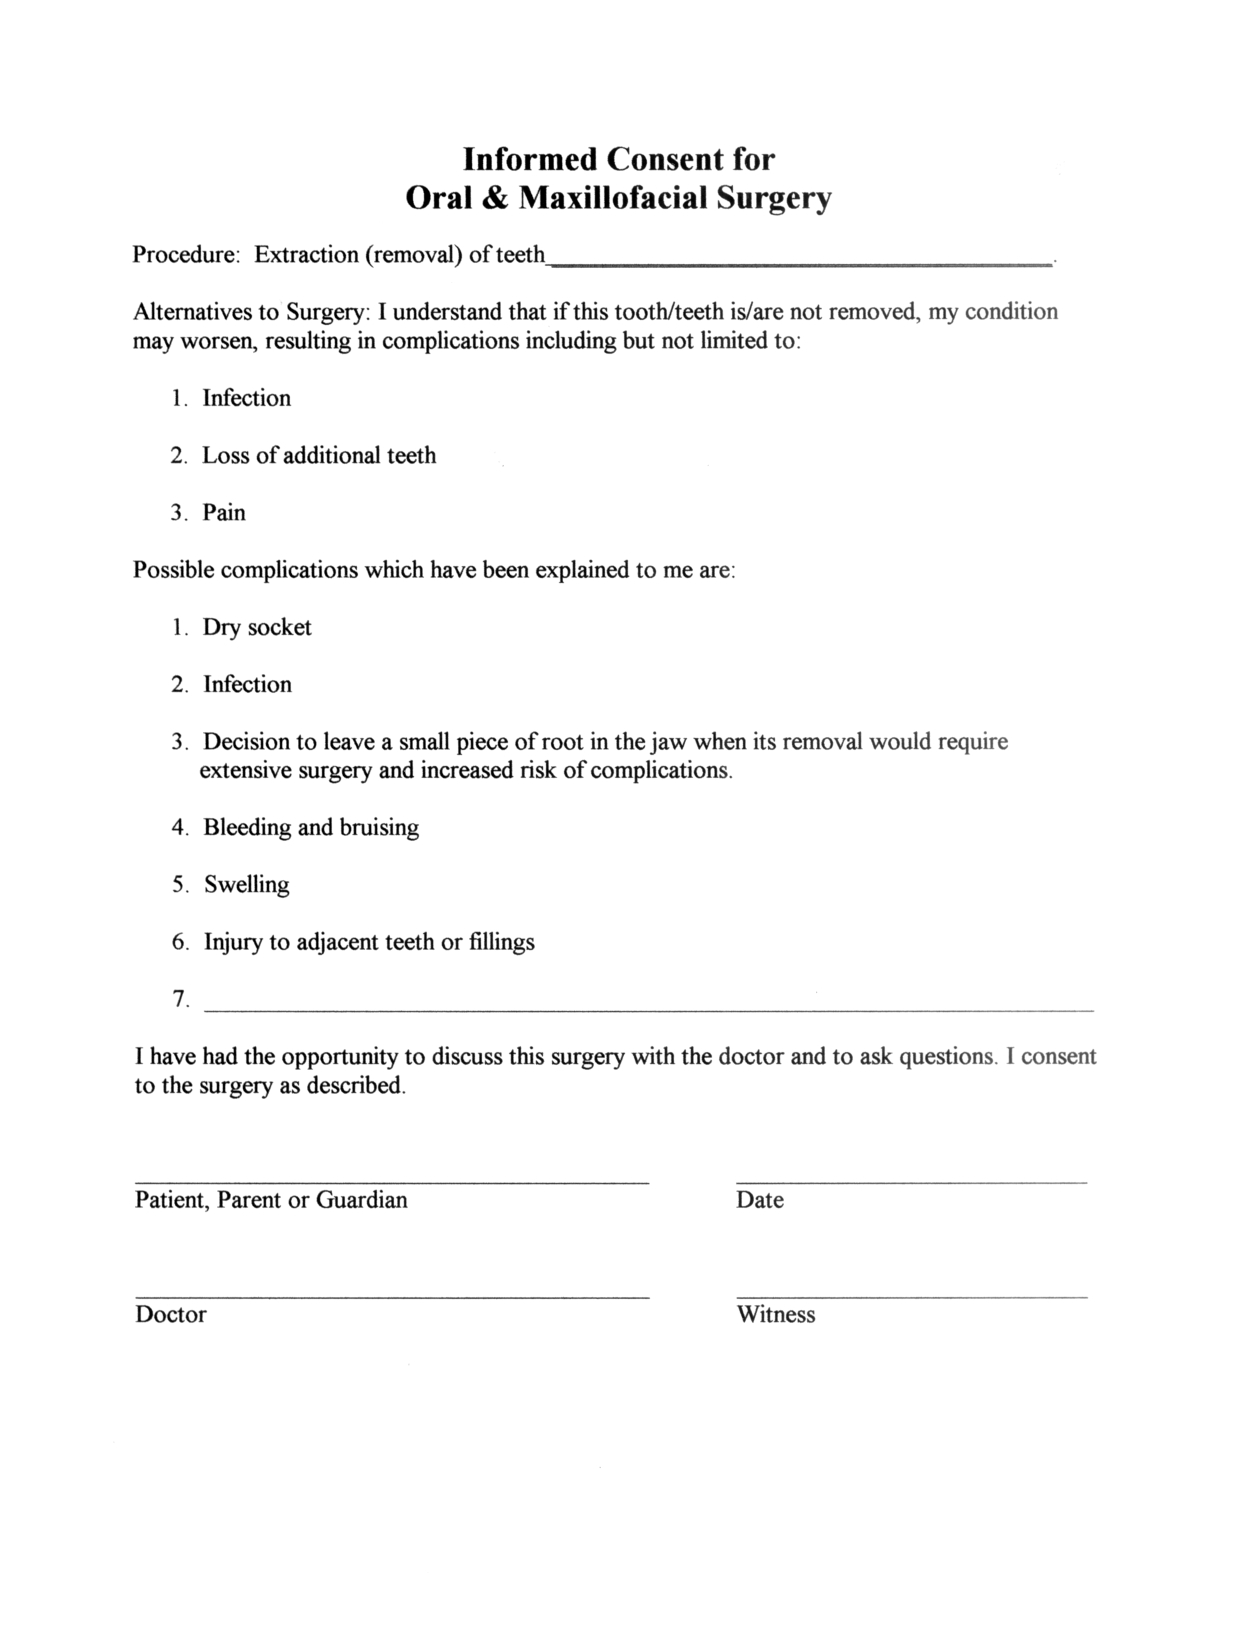 Medical Consent Letter Template - Minor Surgery Consent form Template Consent form